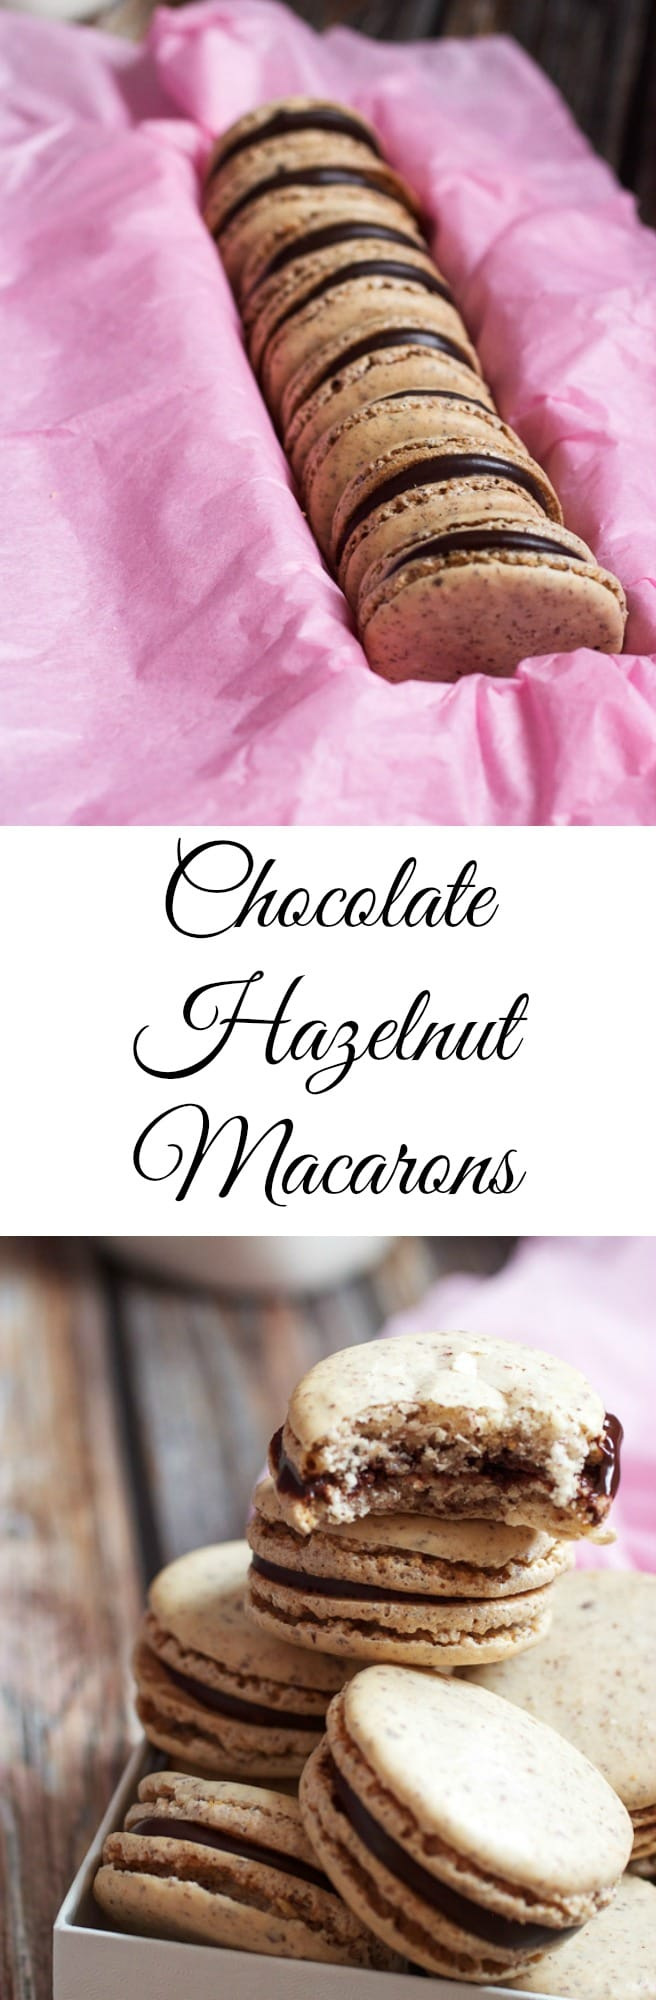 Chocolate Hazelnut Macarons | girlinthelittleredkitchen.com